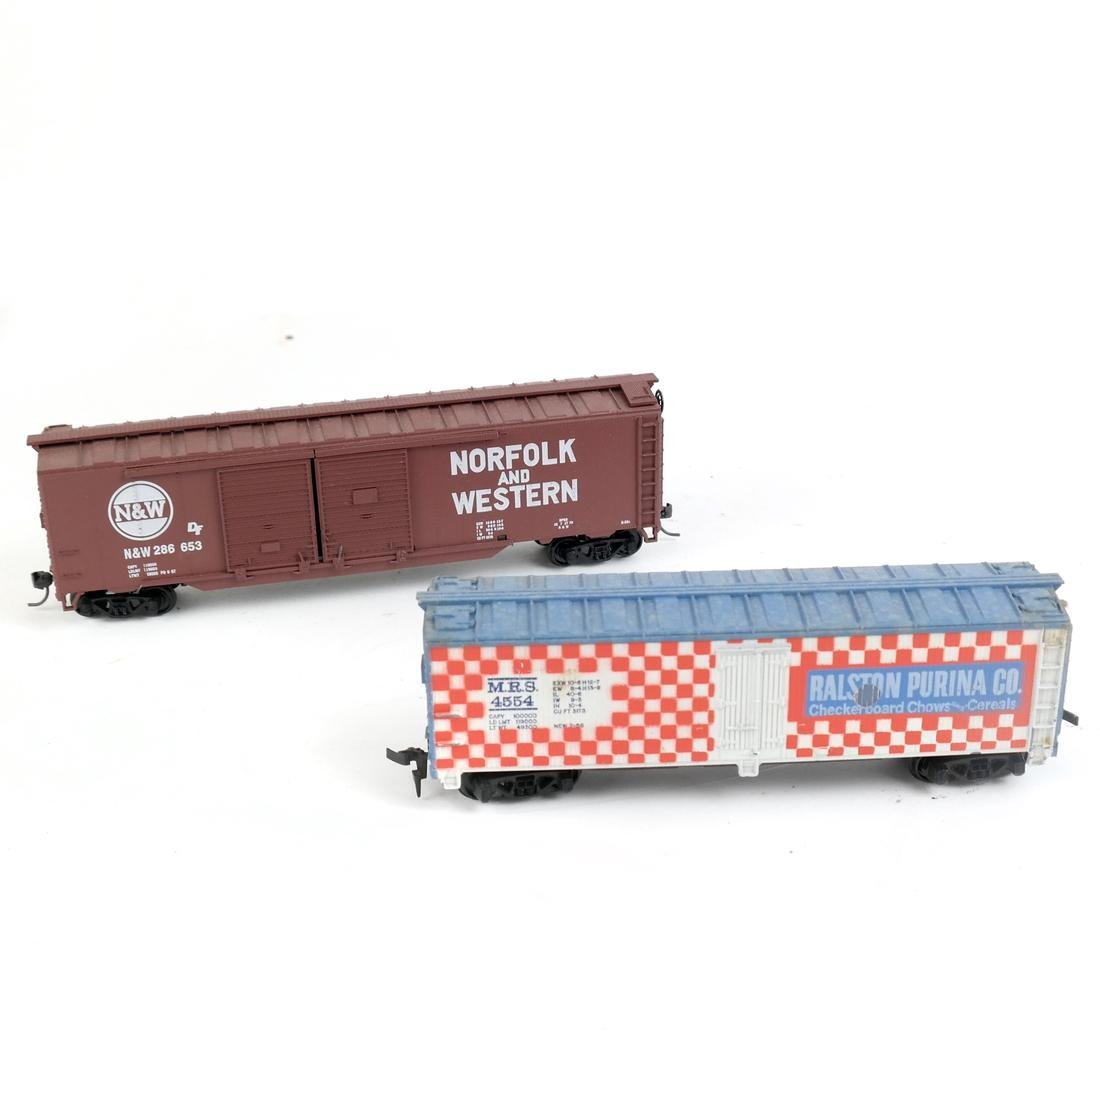 Lot of Toy Trains - 6